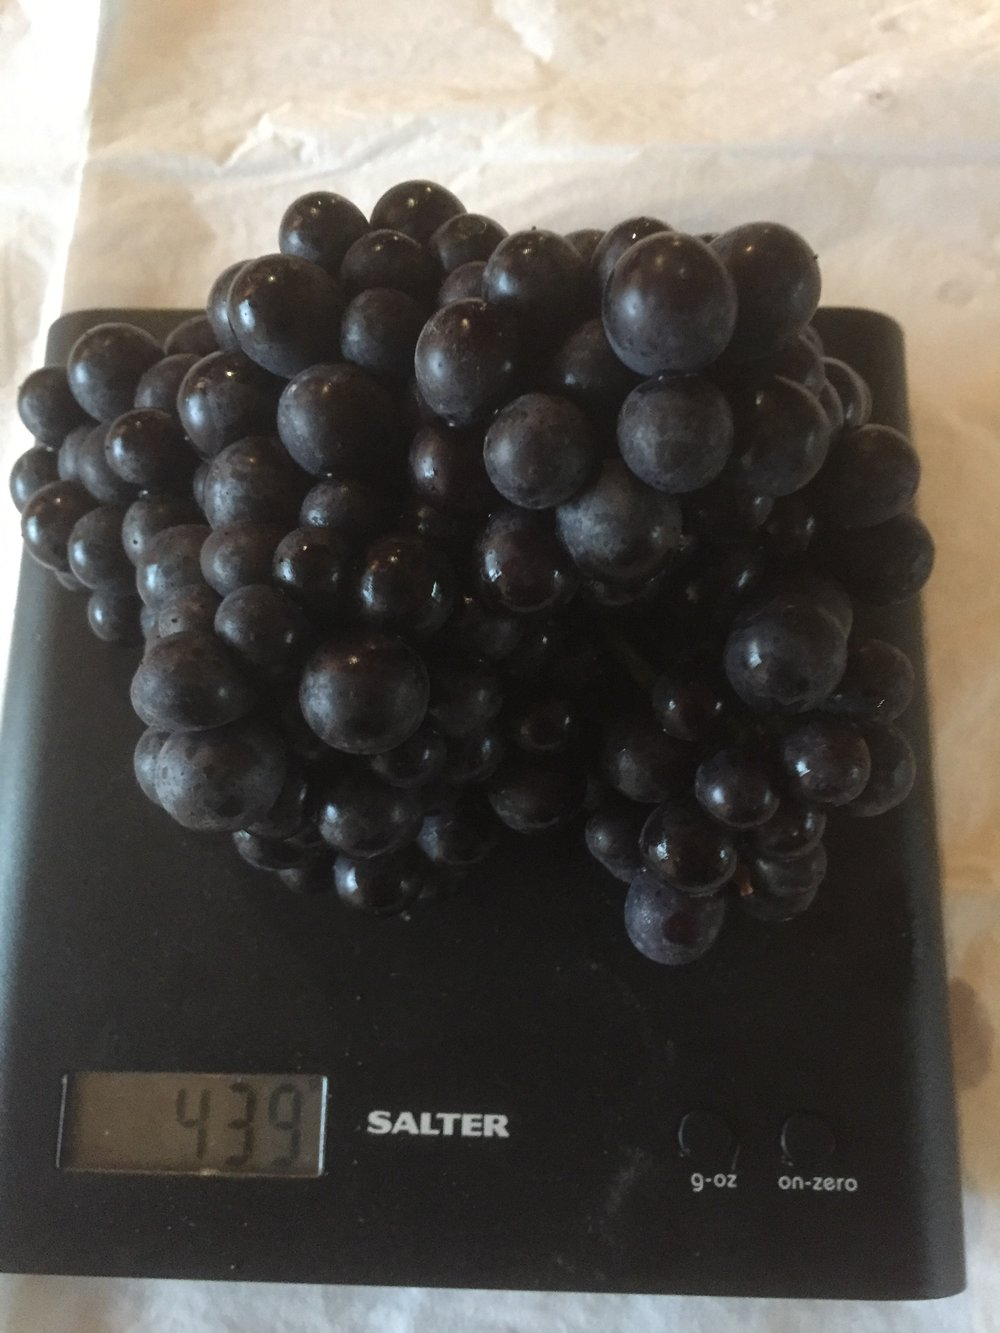 A monster bunch on the scales